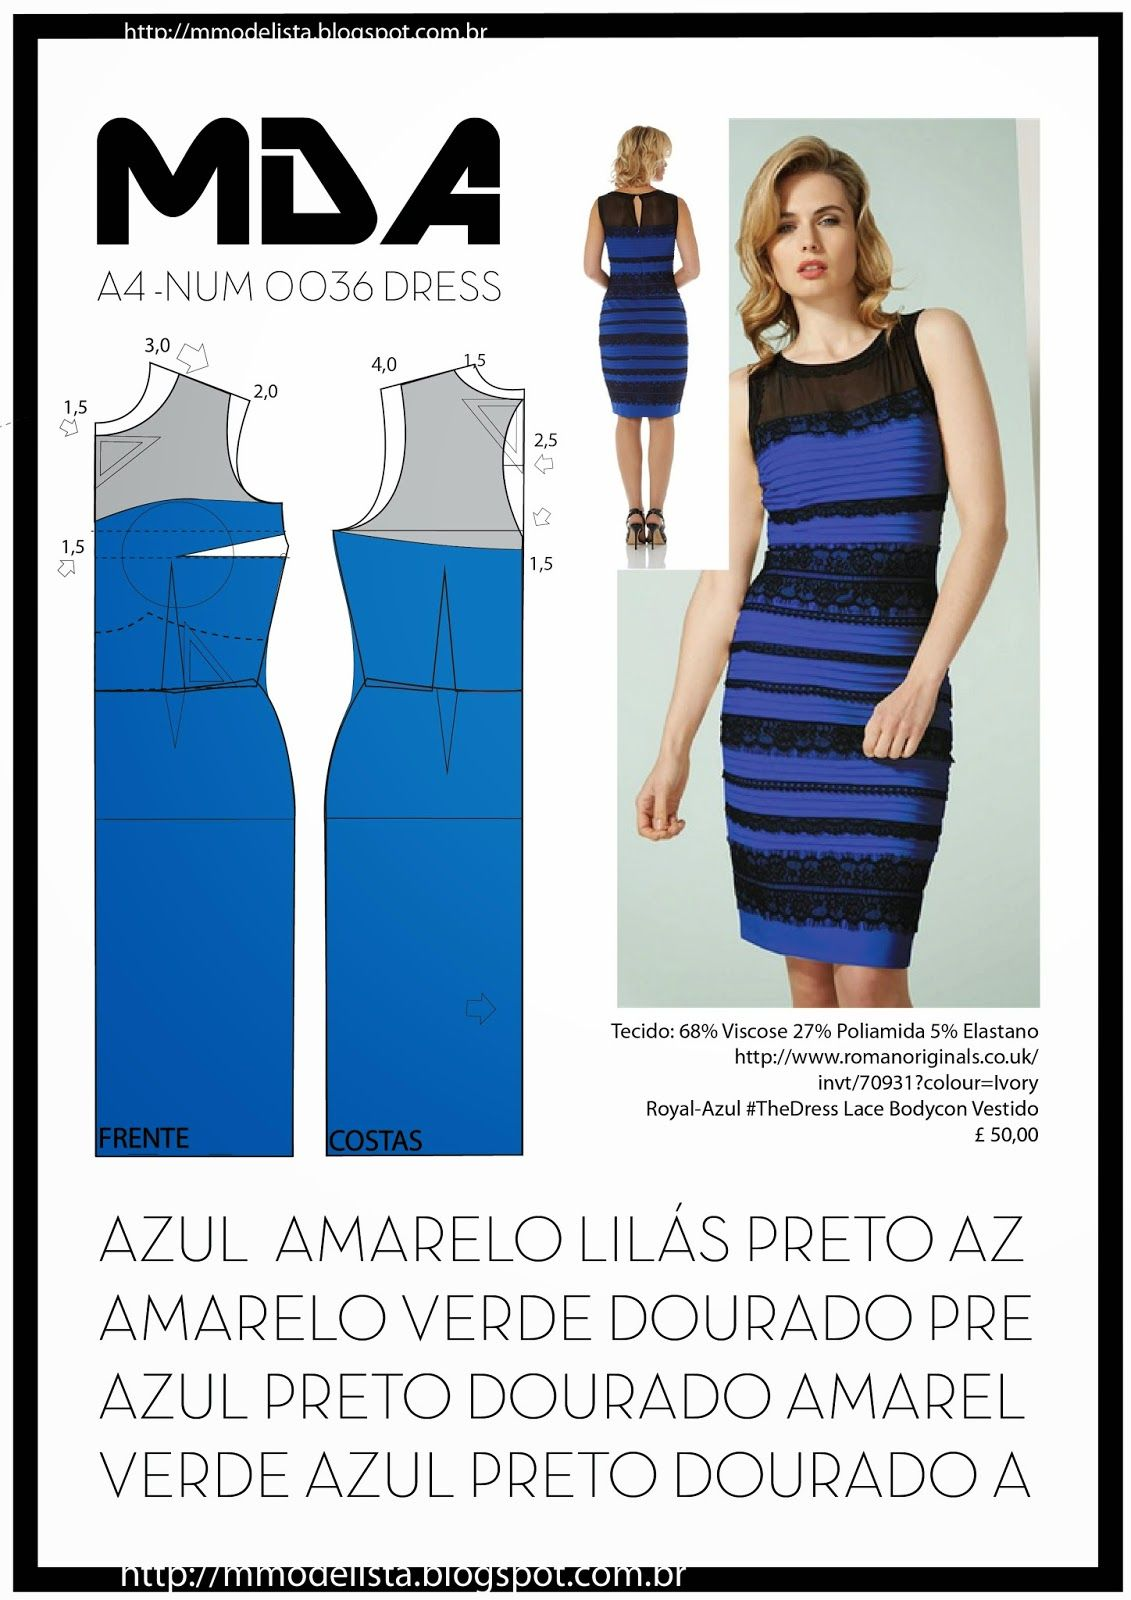 A4 - NUM 0036 - DRESS | Molde, Costura y Patrones